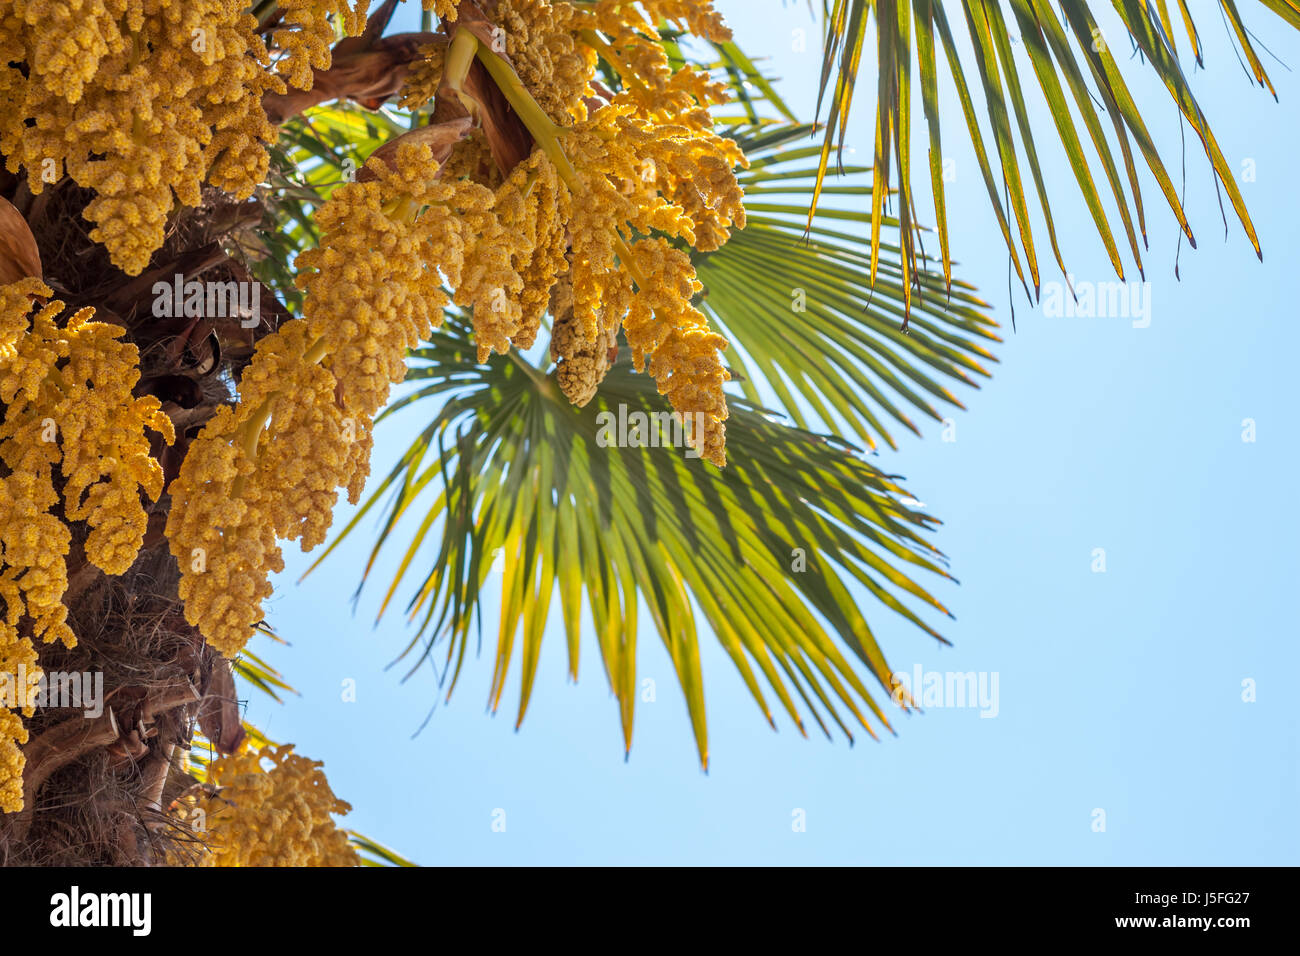 Palm Tree Flower Yellow Stock Photos Palm Tree Flower Yellow Stock